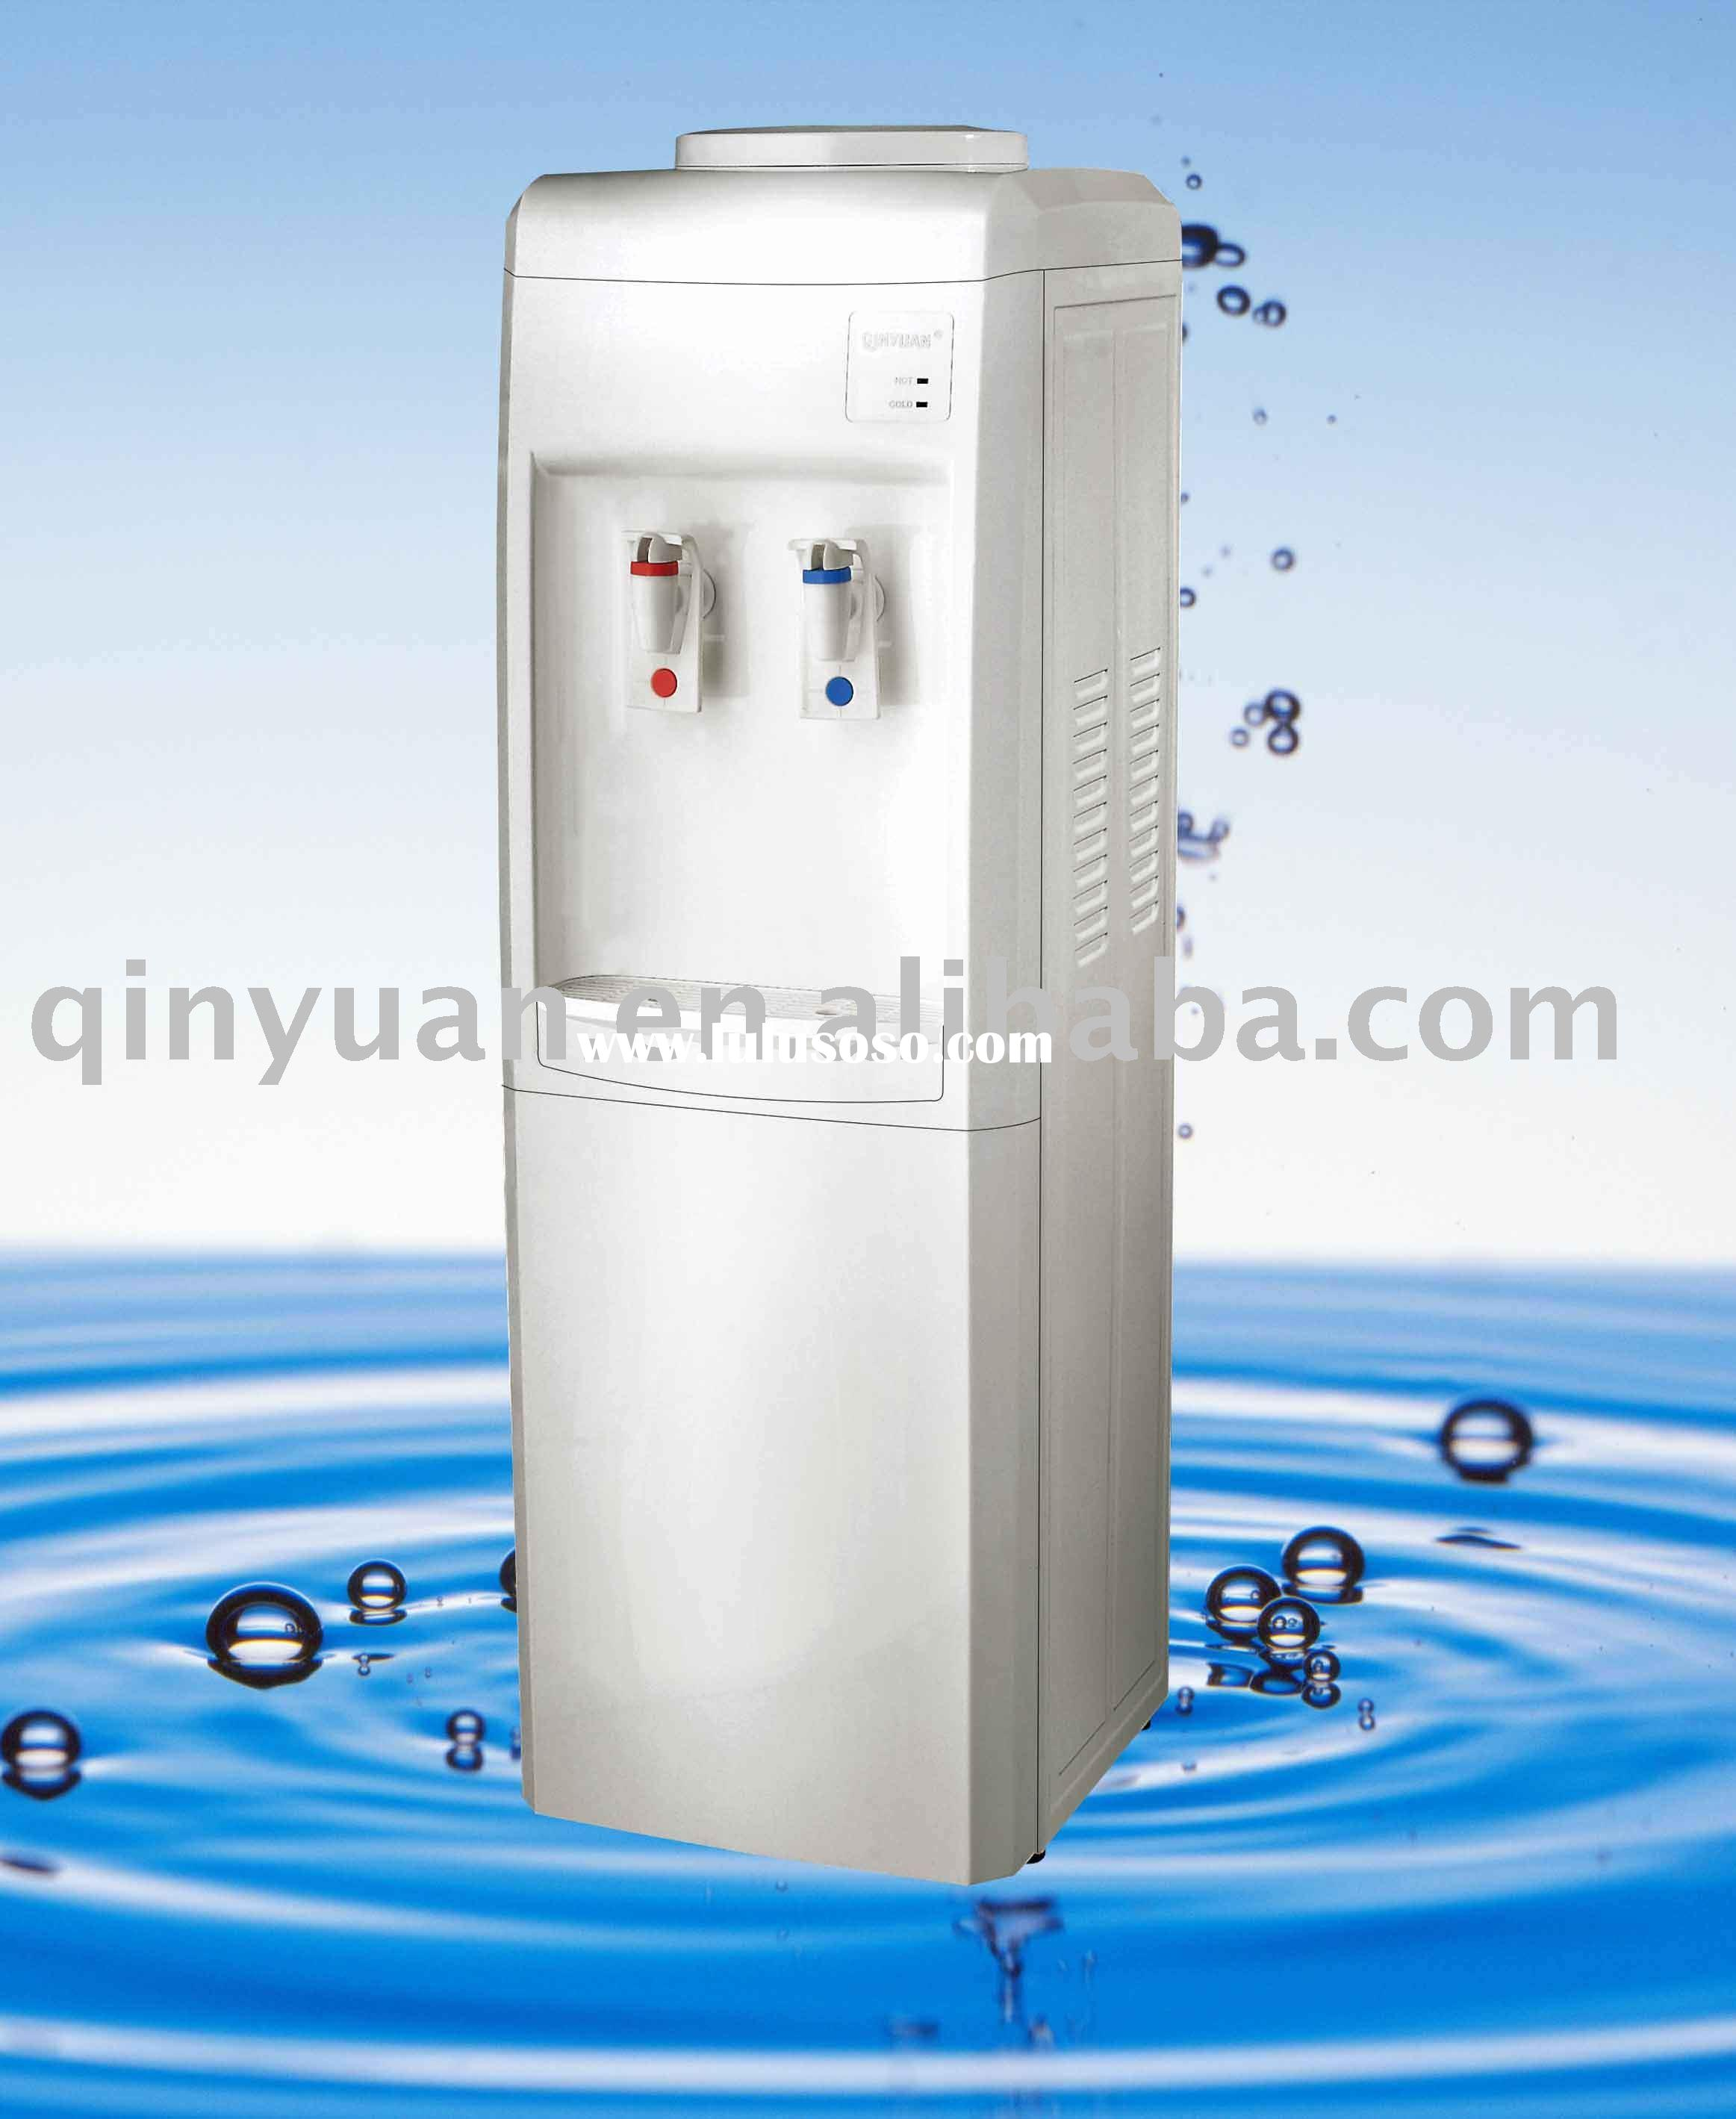 Hot cold water dispenser,home office bottled stainless steel water cooler dispenser BY82